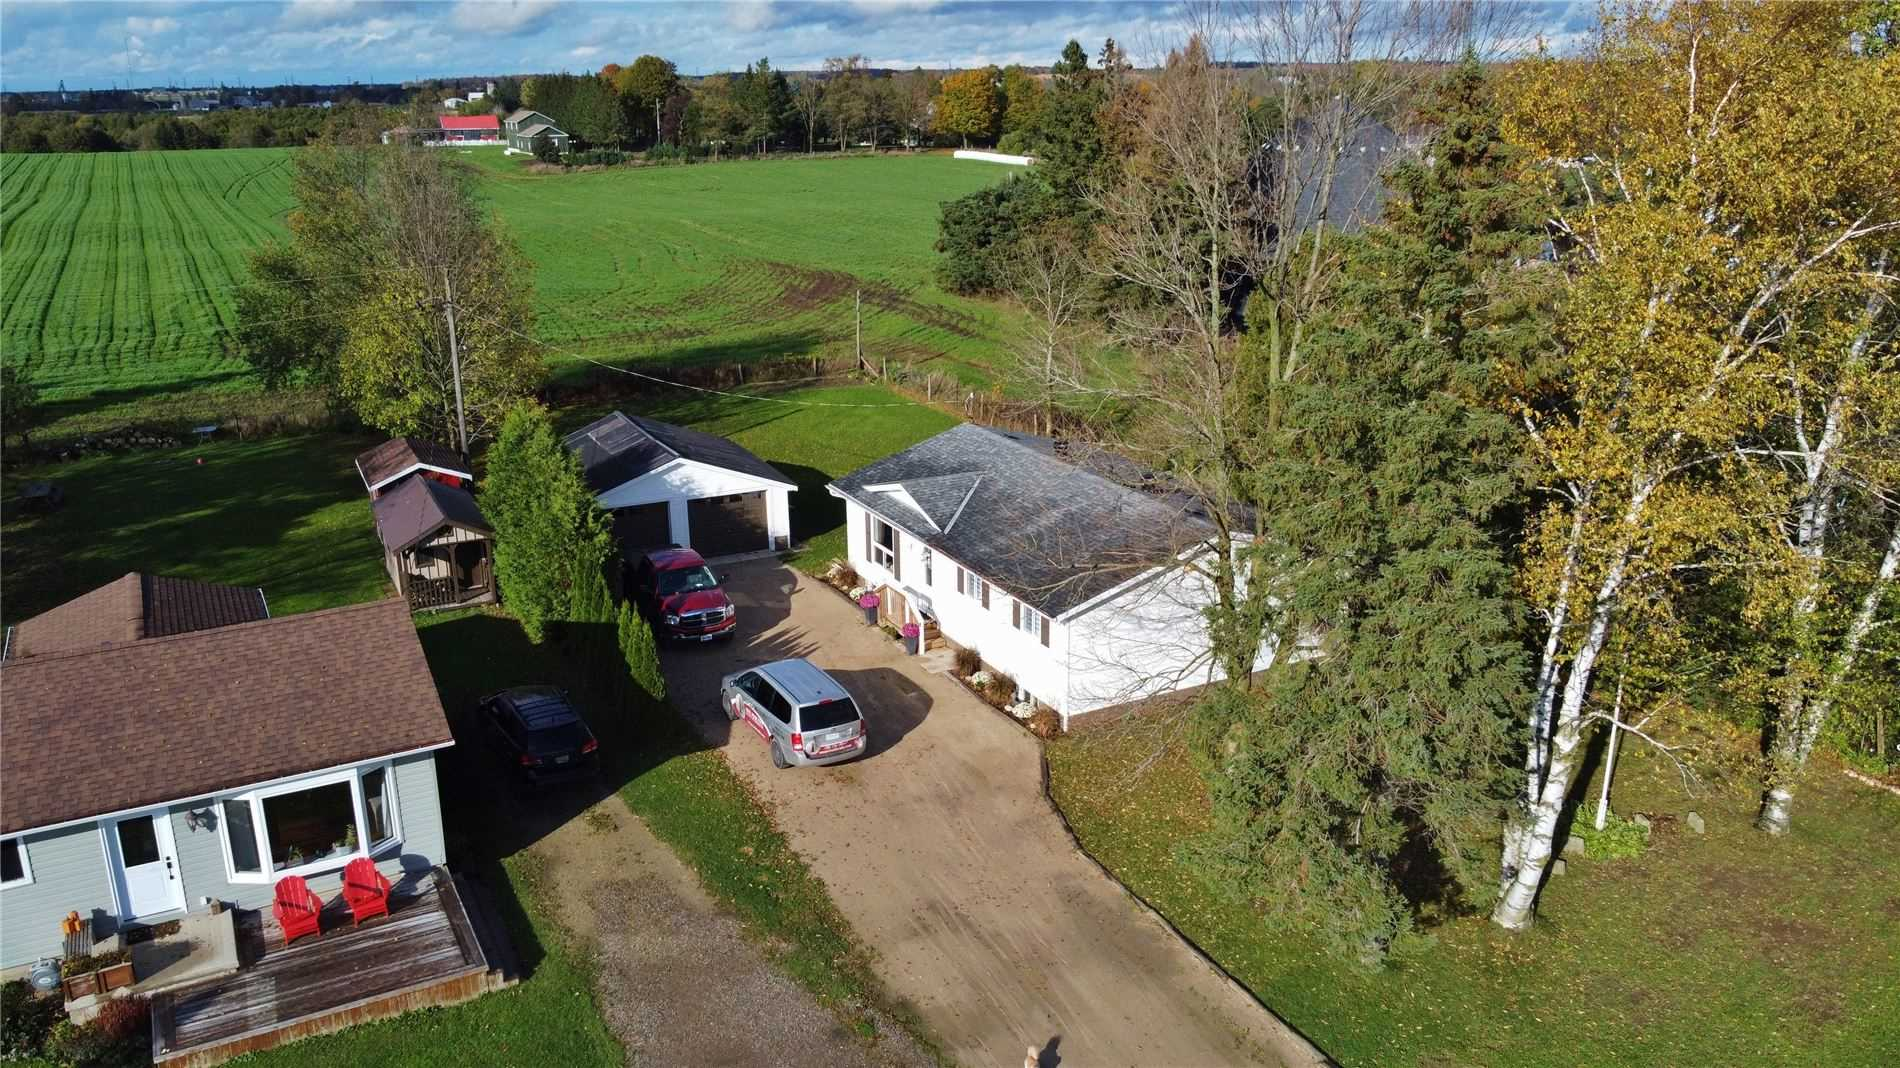 Detached house For Sale In Wellington North - 123263 Southgate Rd 12 Rd, Wellington North, Ontario, Canada N0G2L0 , 3 Bedrooms Bedrooms, ,1 BathroomBathrooms,Detached,For Sale,Southgate Rd 12